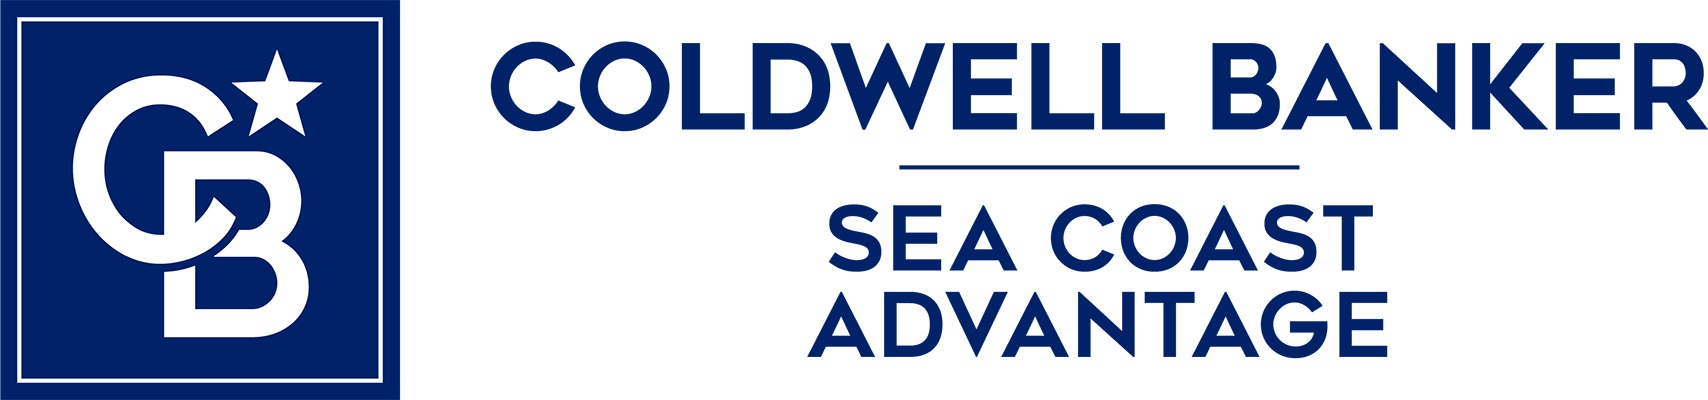 William Thornton - Coldwell Banker Sea Coast Advantage Realty Logo